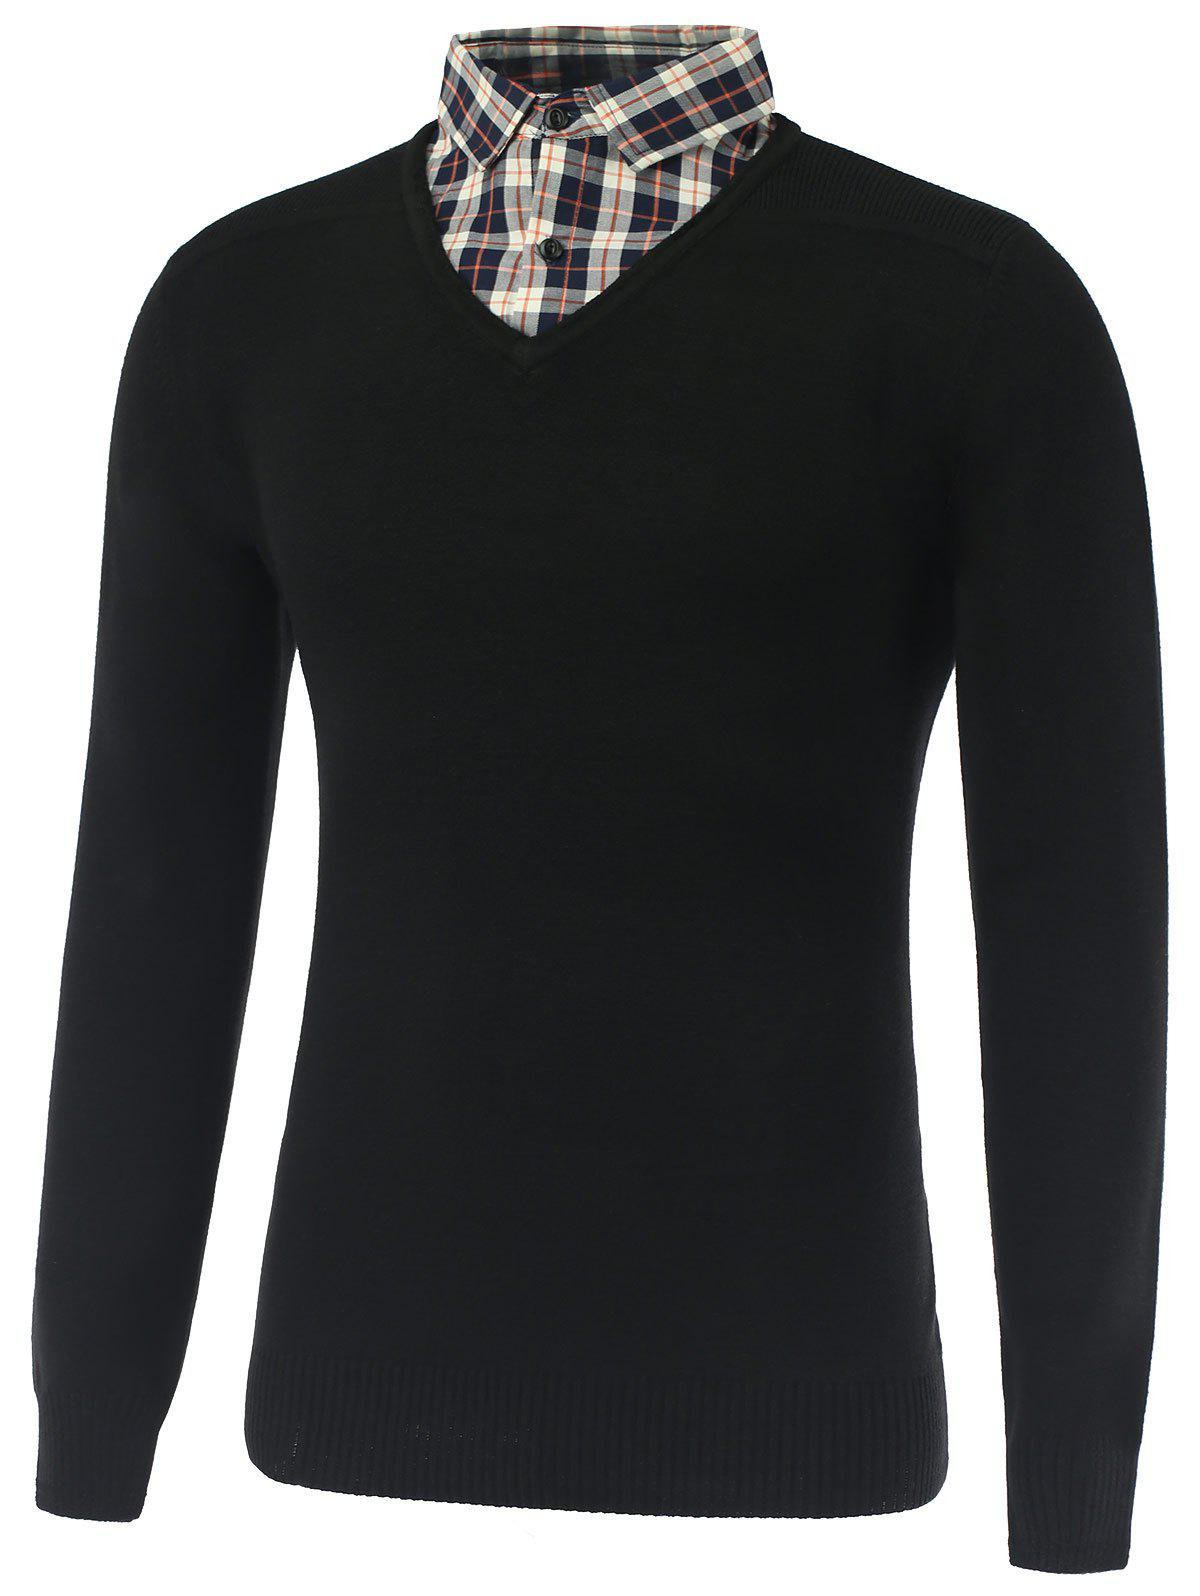 Rib Cuff Plaid Long Sleeve Pullover Knitwear - BLACK 2XL